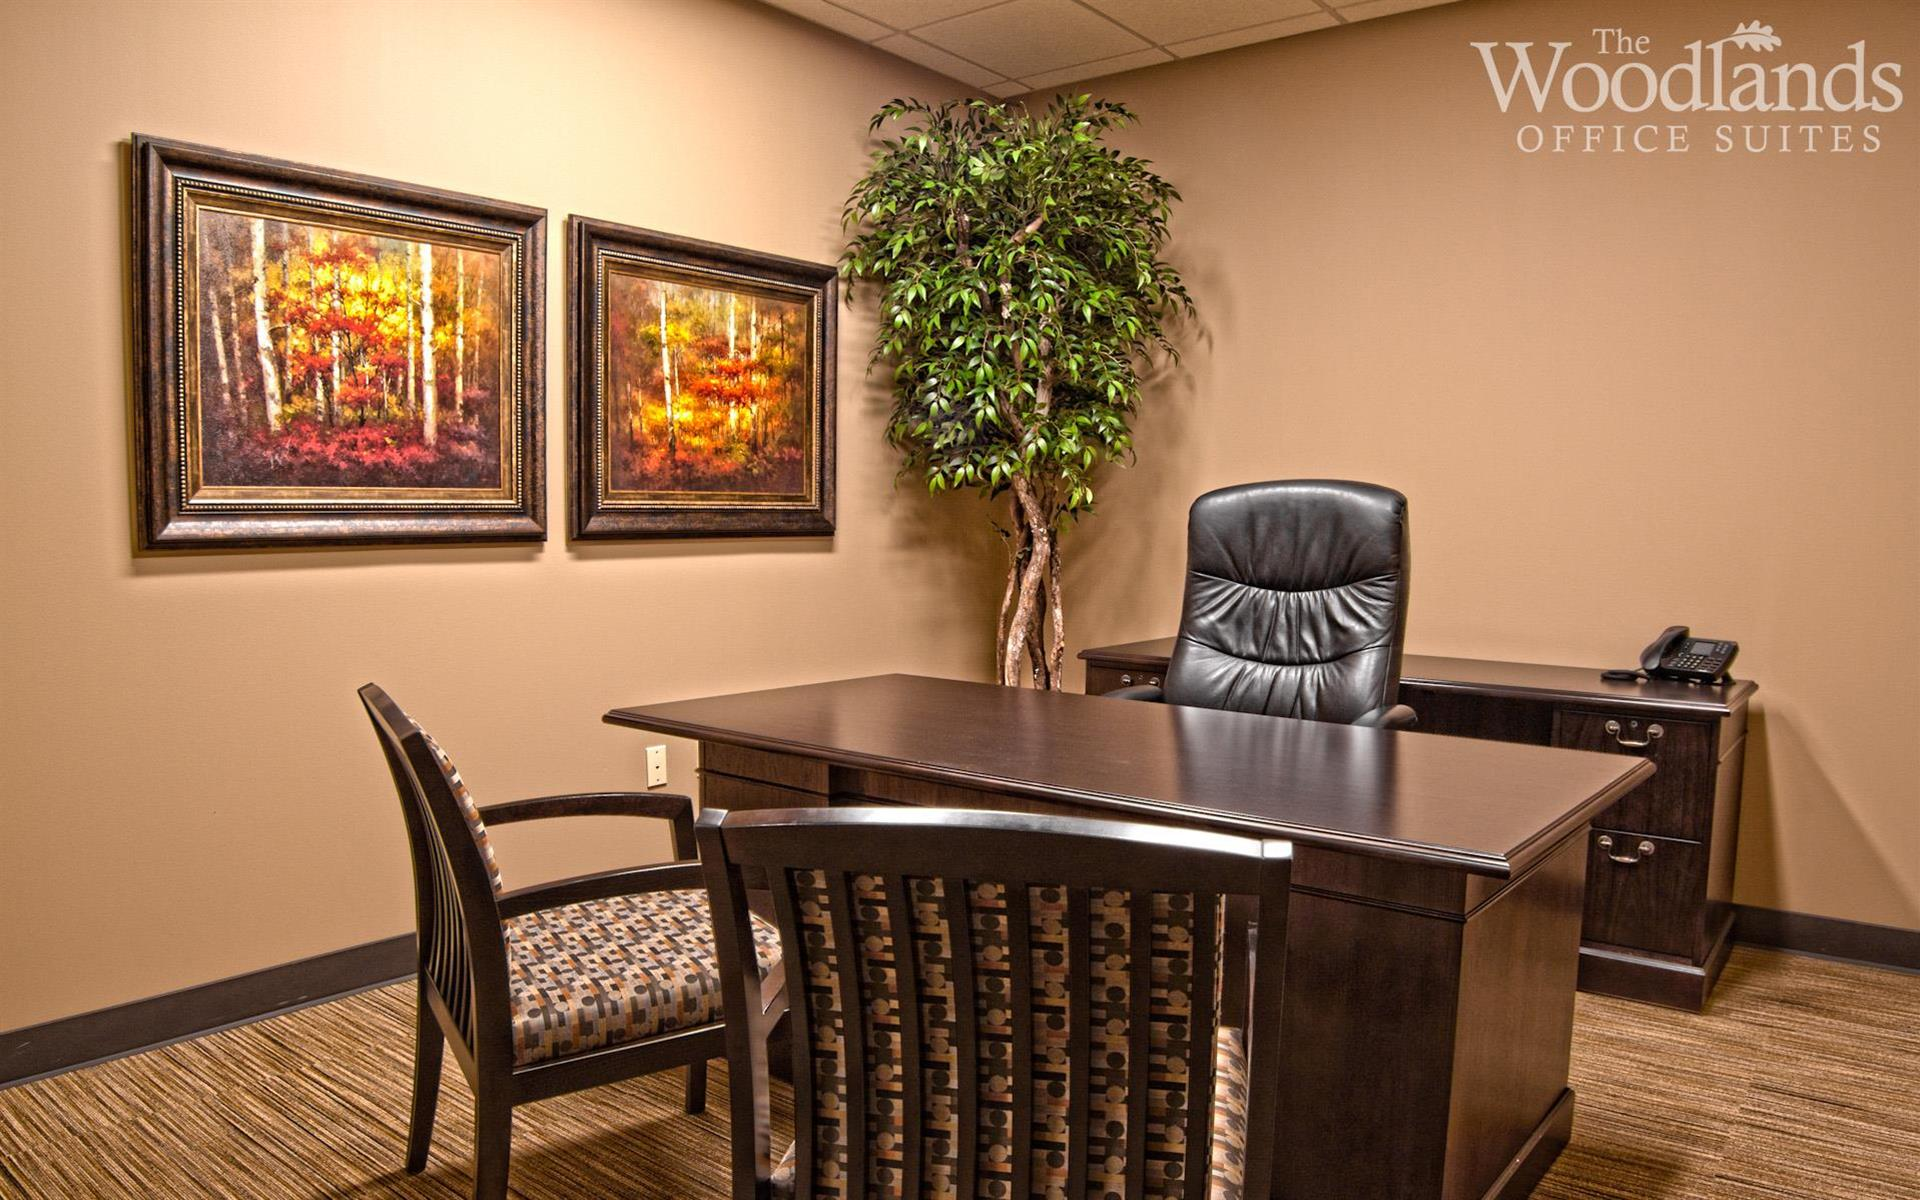 The Woodlands Office Suites - Suite #244 - Small Interior Office